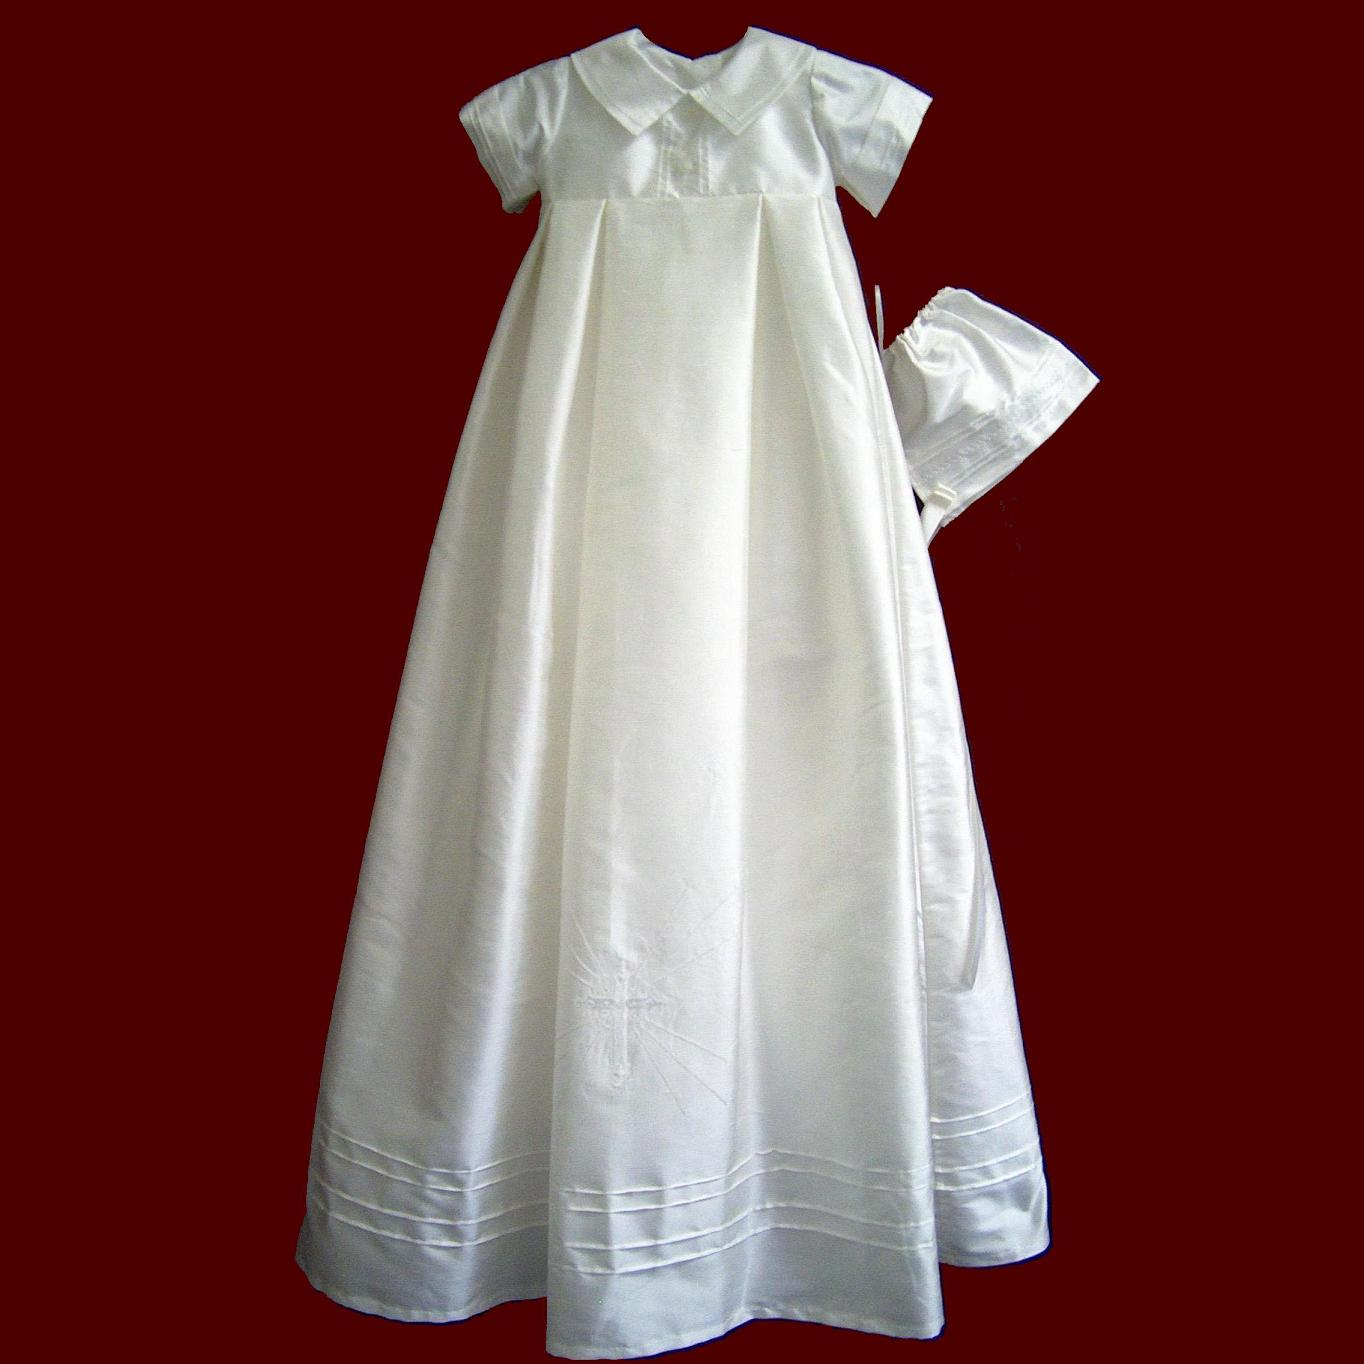 Christening Gowns From Wedding Dresses: Boys Gowns & Detachable Gowns